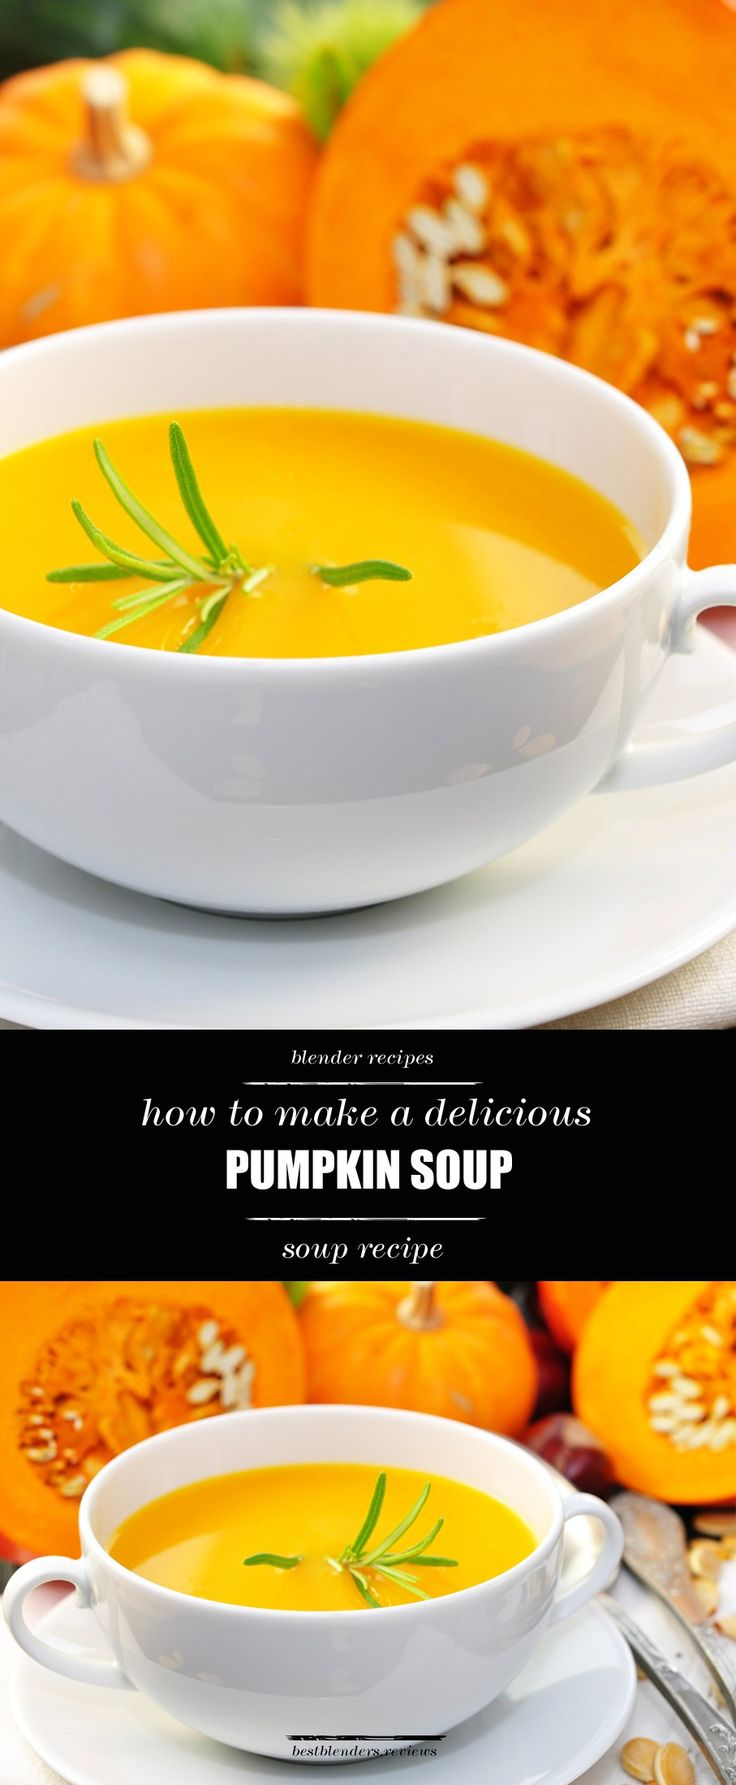 You will LOVE this simply delicious pumpkin soup! It doesn't need to be fall season to enjoy this premium recipe. Make it anytime of the year. Check out our easy to follow instructions on how to whip this up by clicking through!  #delectable